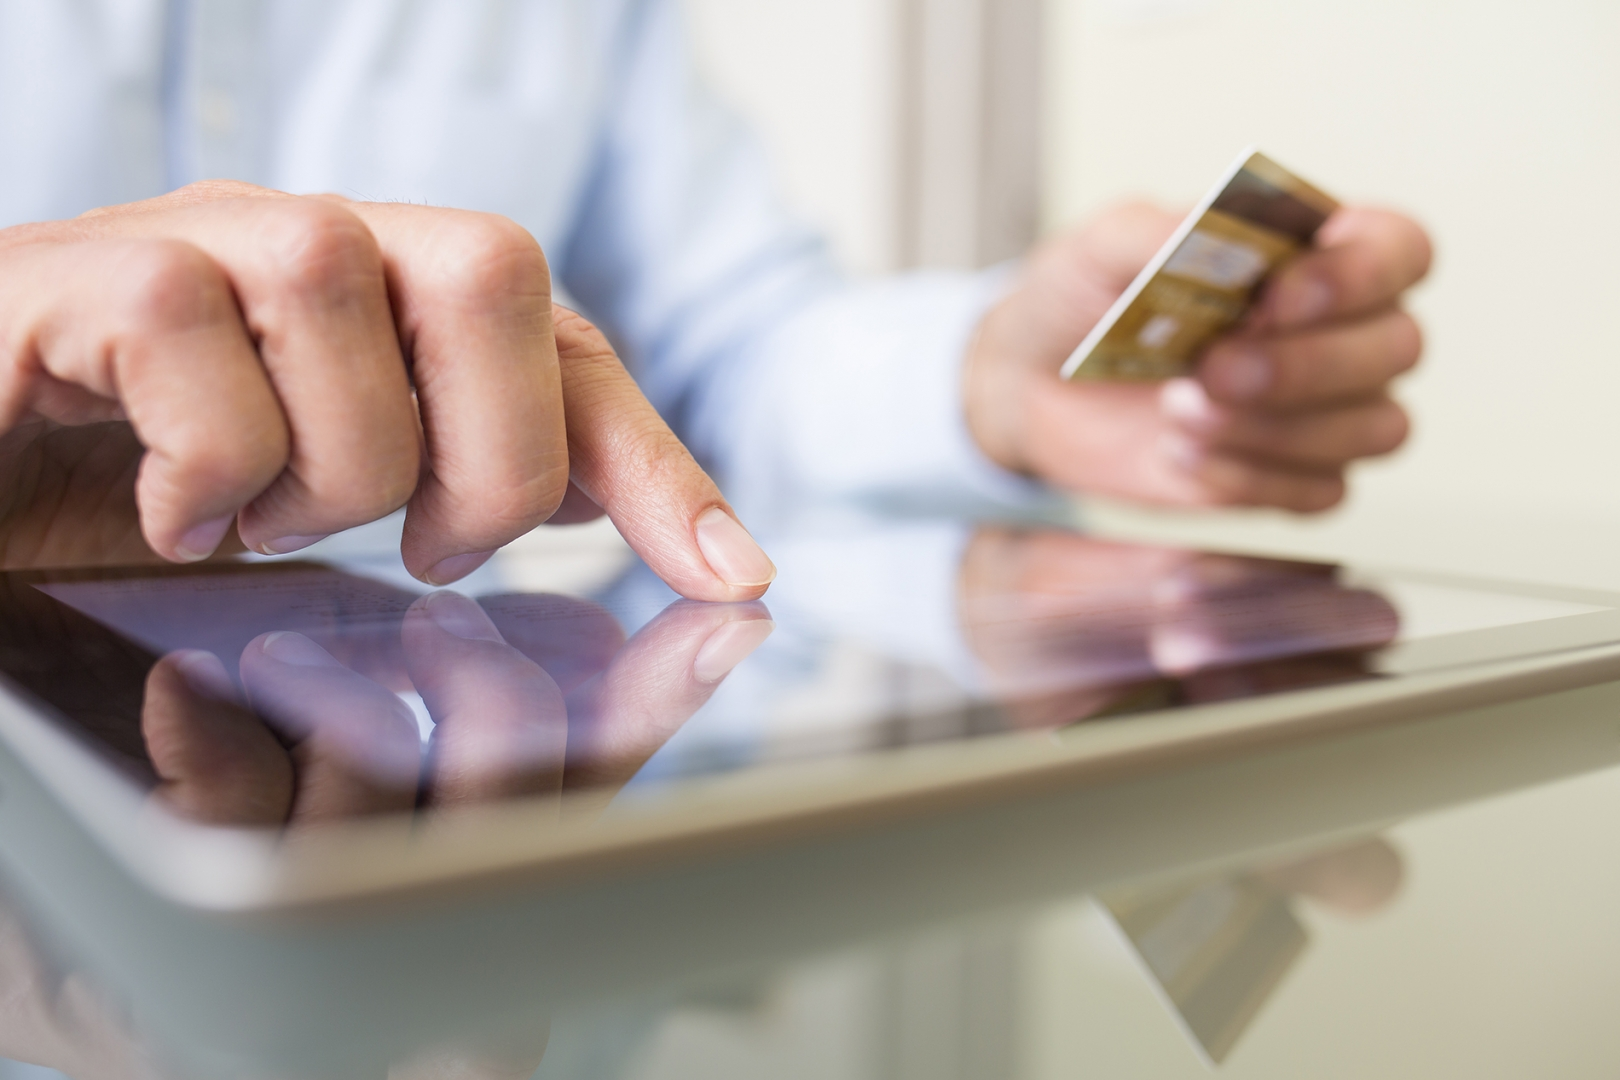 partial image of person making purchase with a tablet